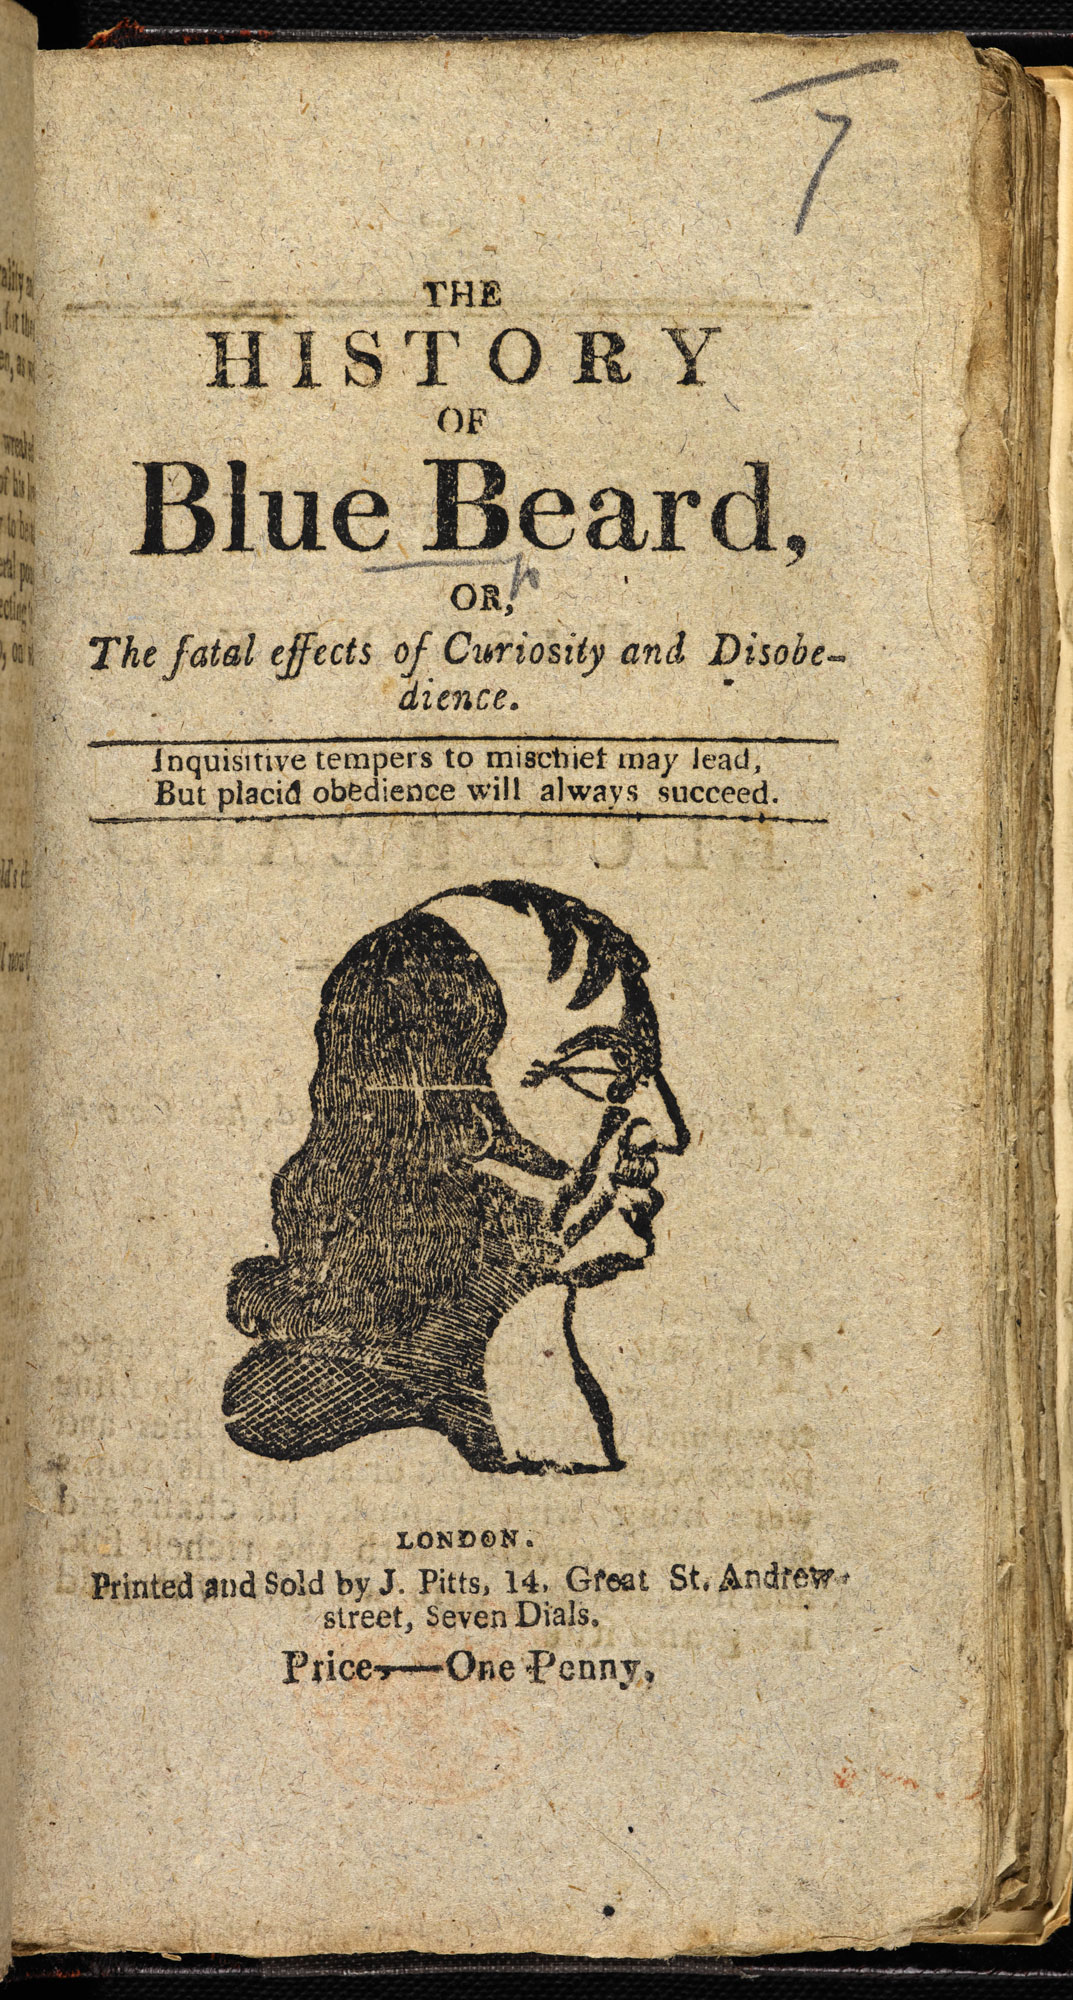 The History of Blue Beard [page: title page]